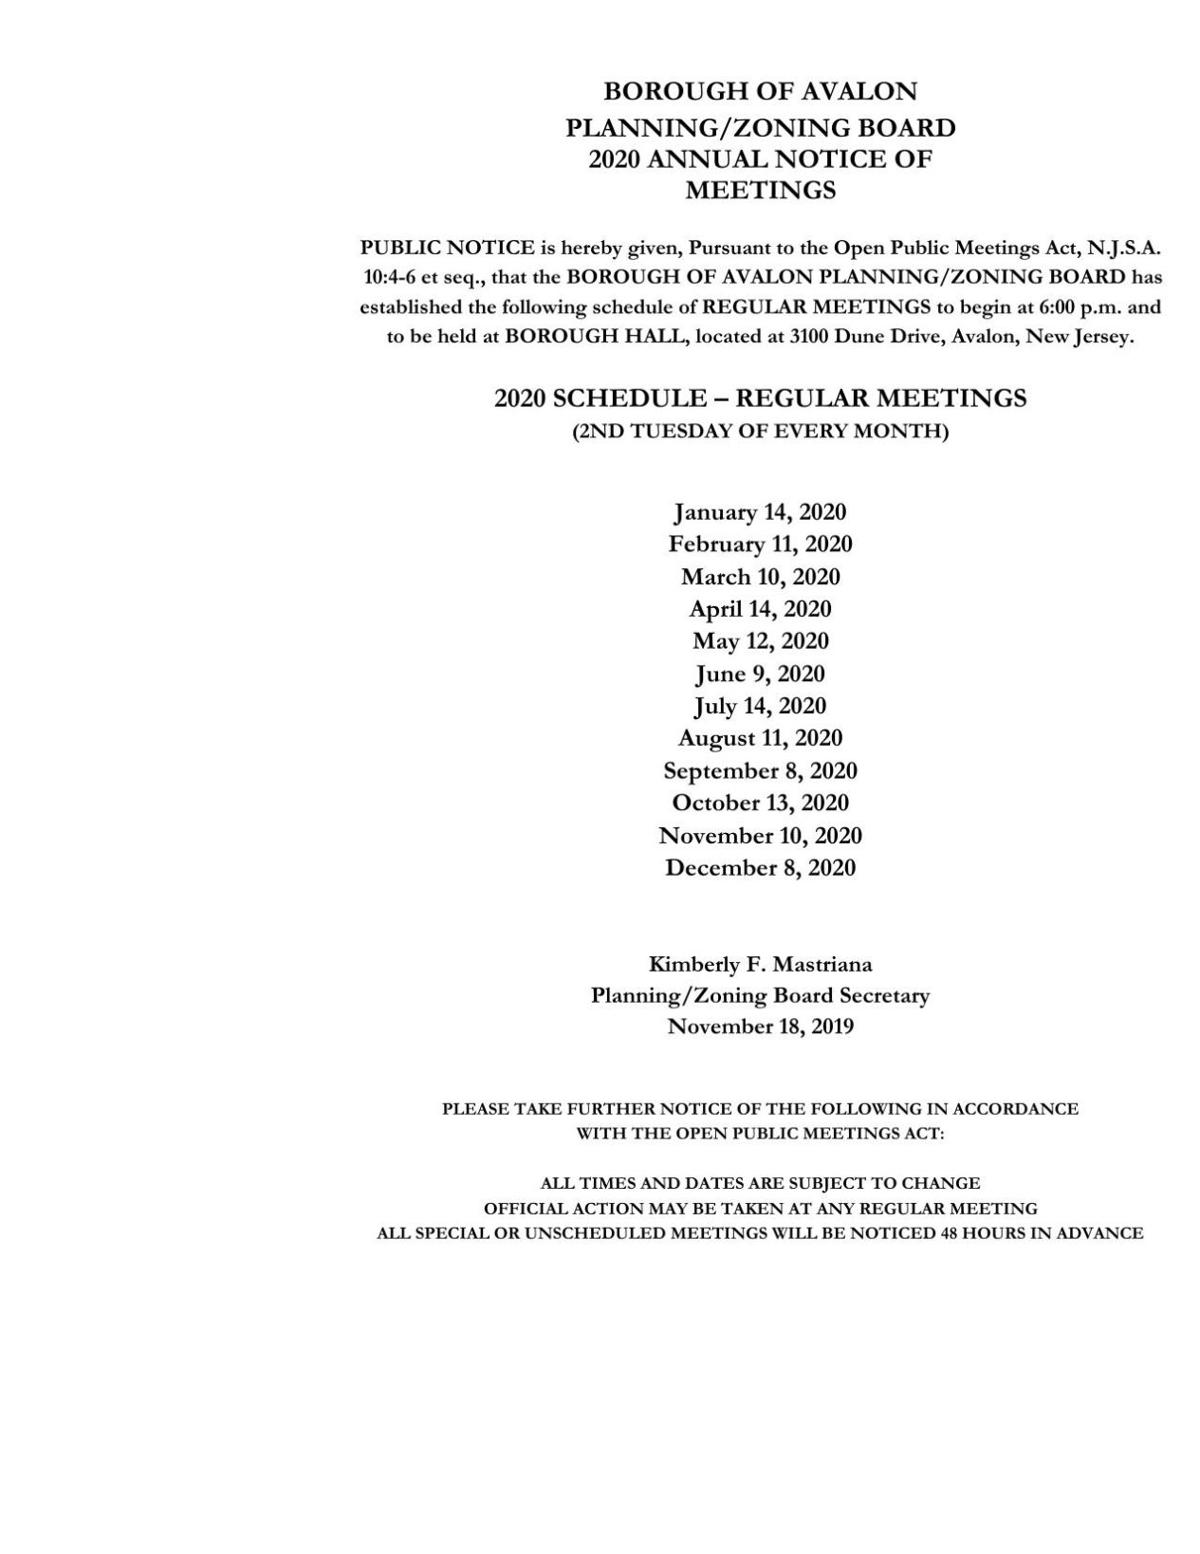 Avalon Planning/Zoning Board Meeting Datges in 2020